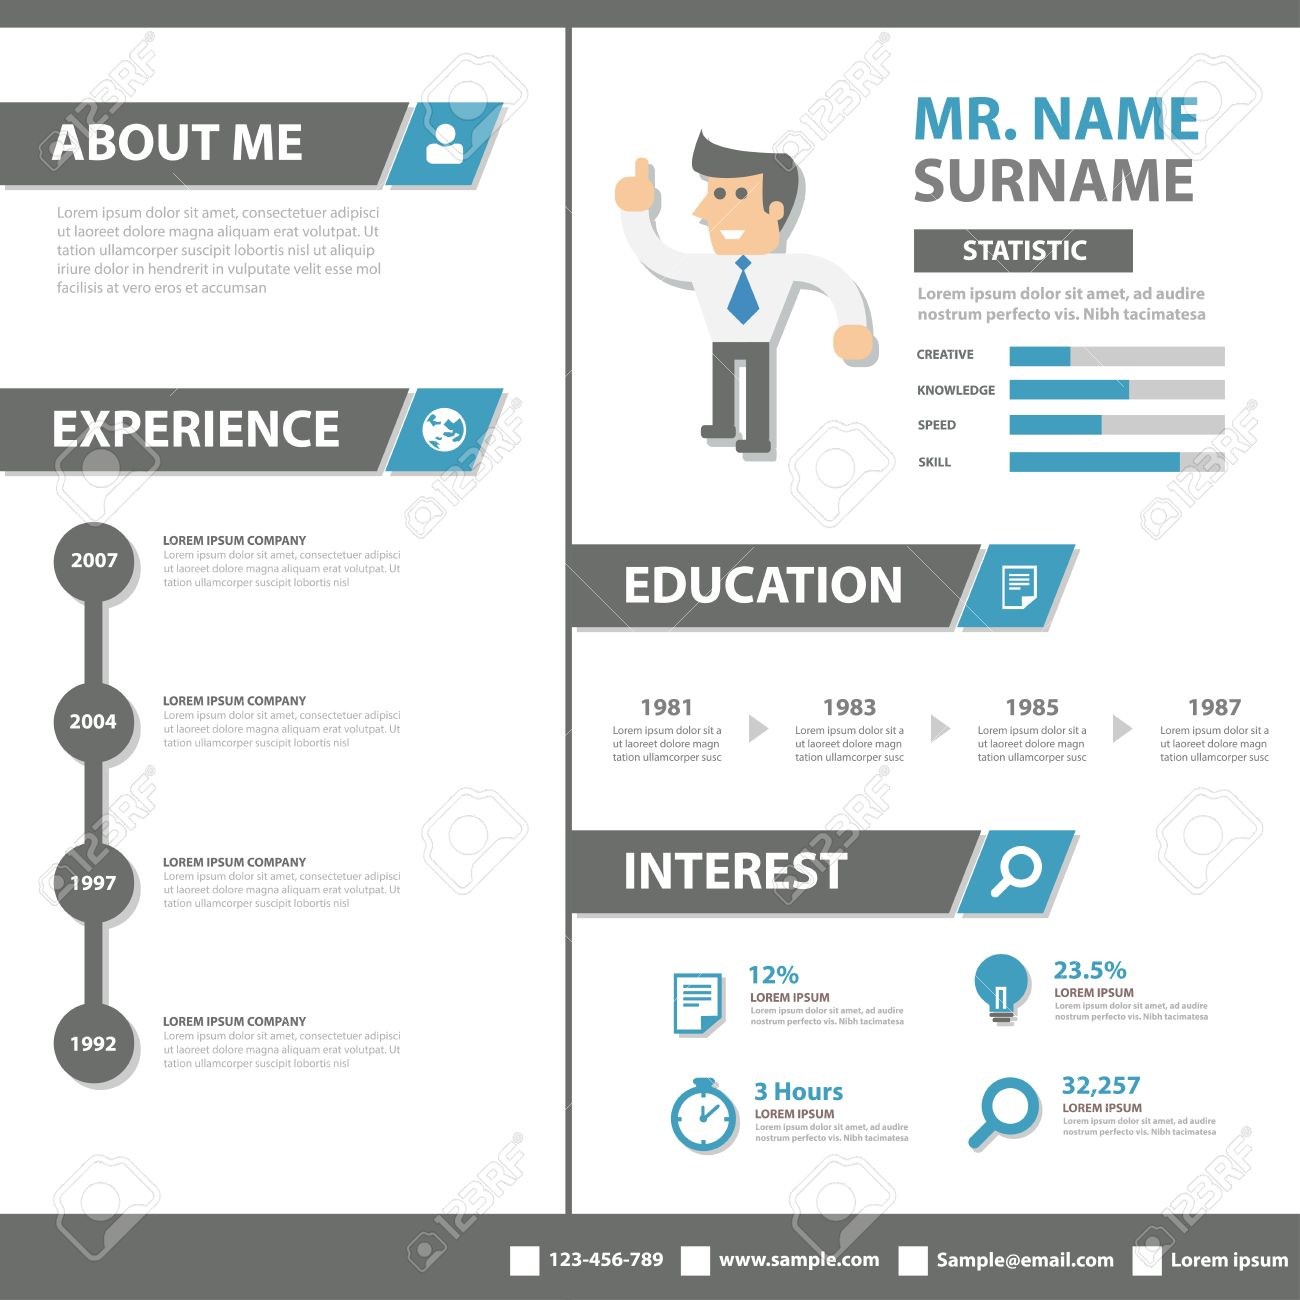 Smart Creative Resume Business Profile Cv Vitae Template Layout